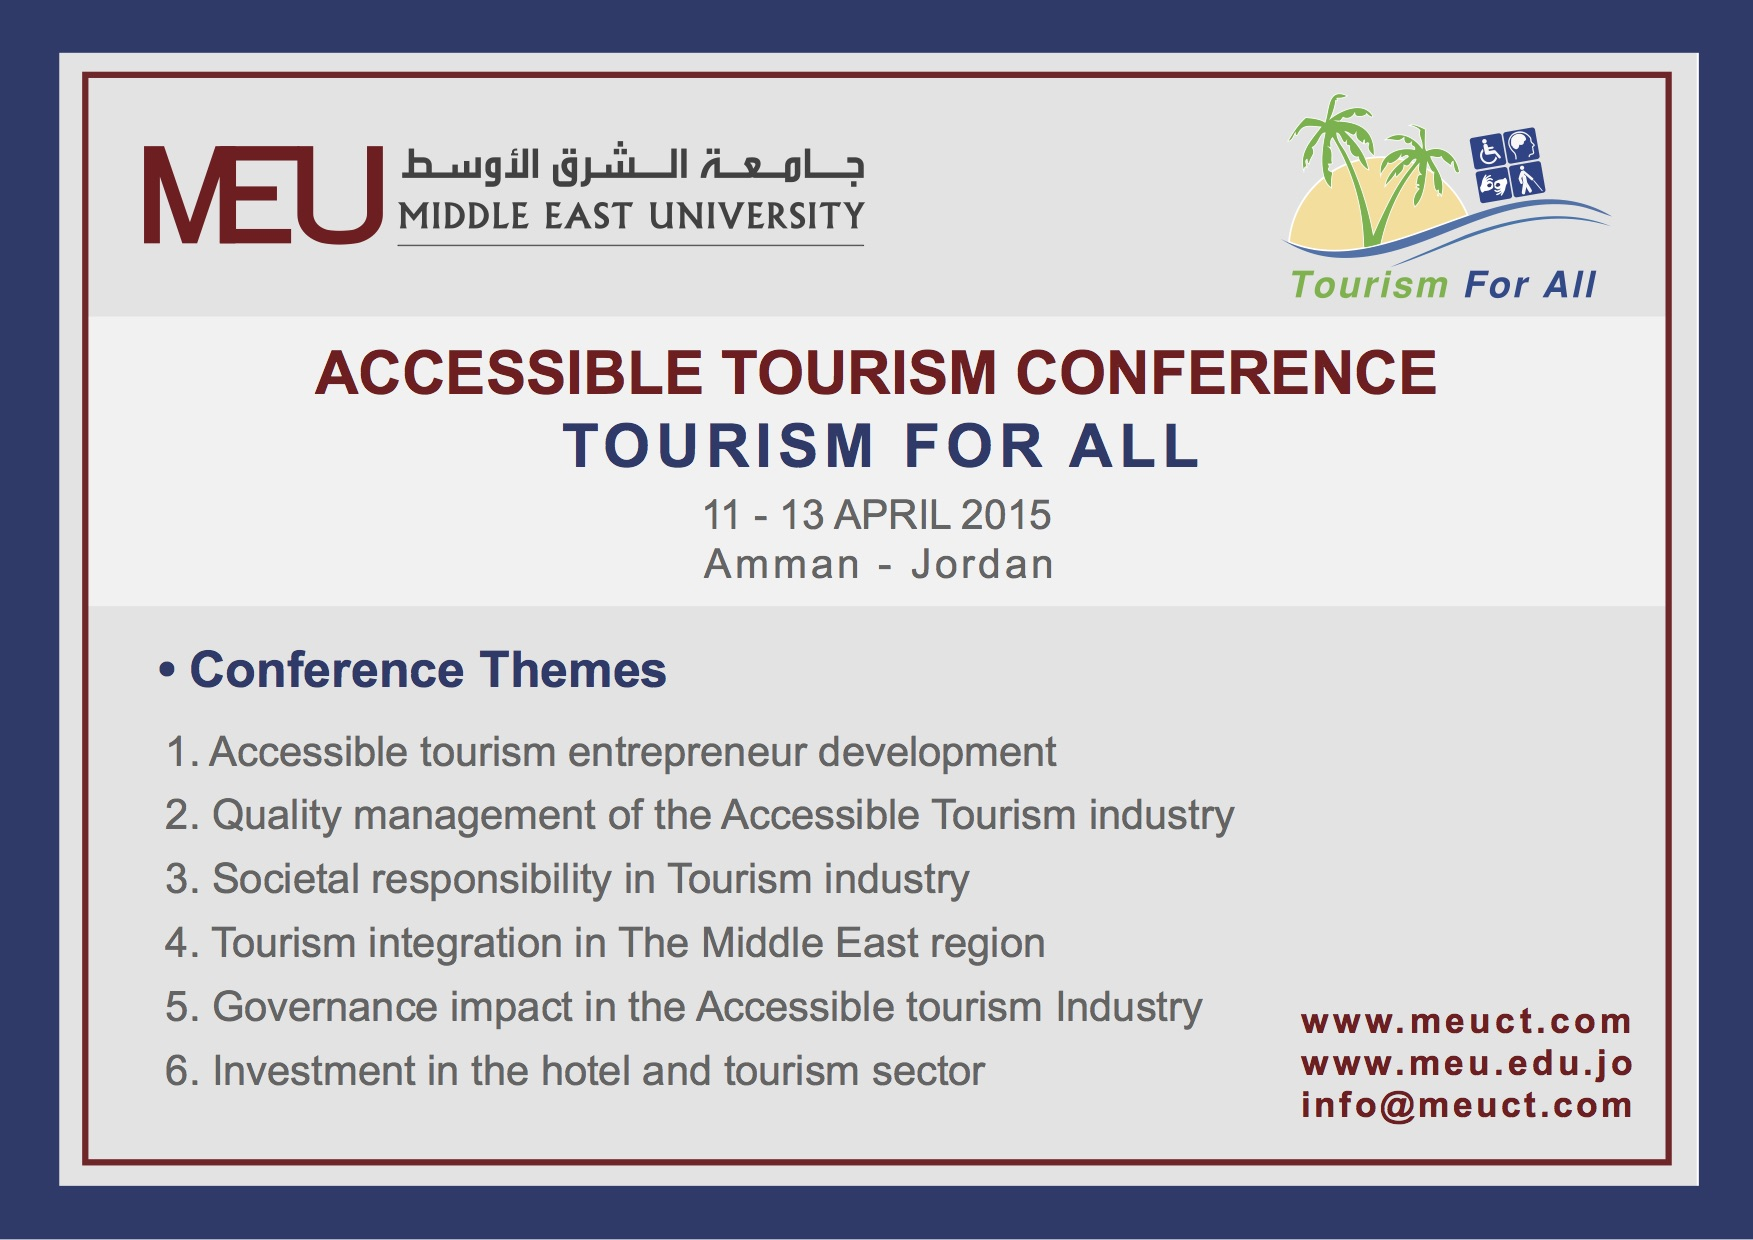 MEU Tourism for All conference themes banner (6 points, as listed above)